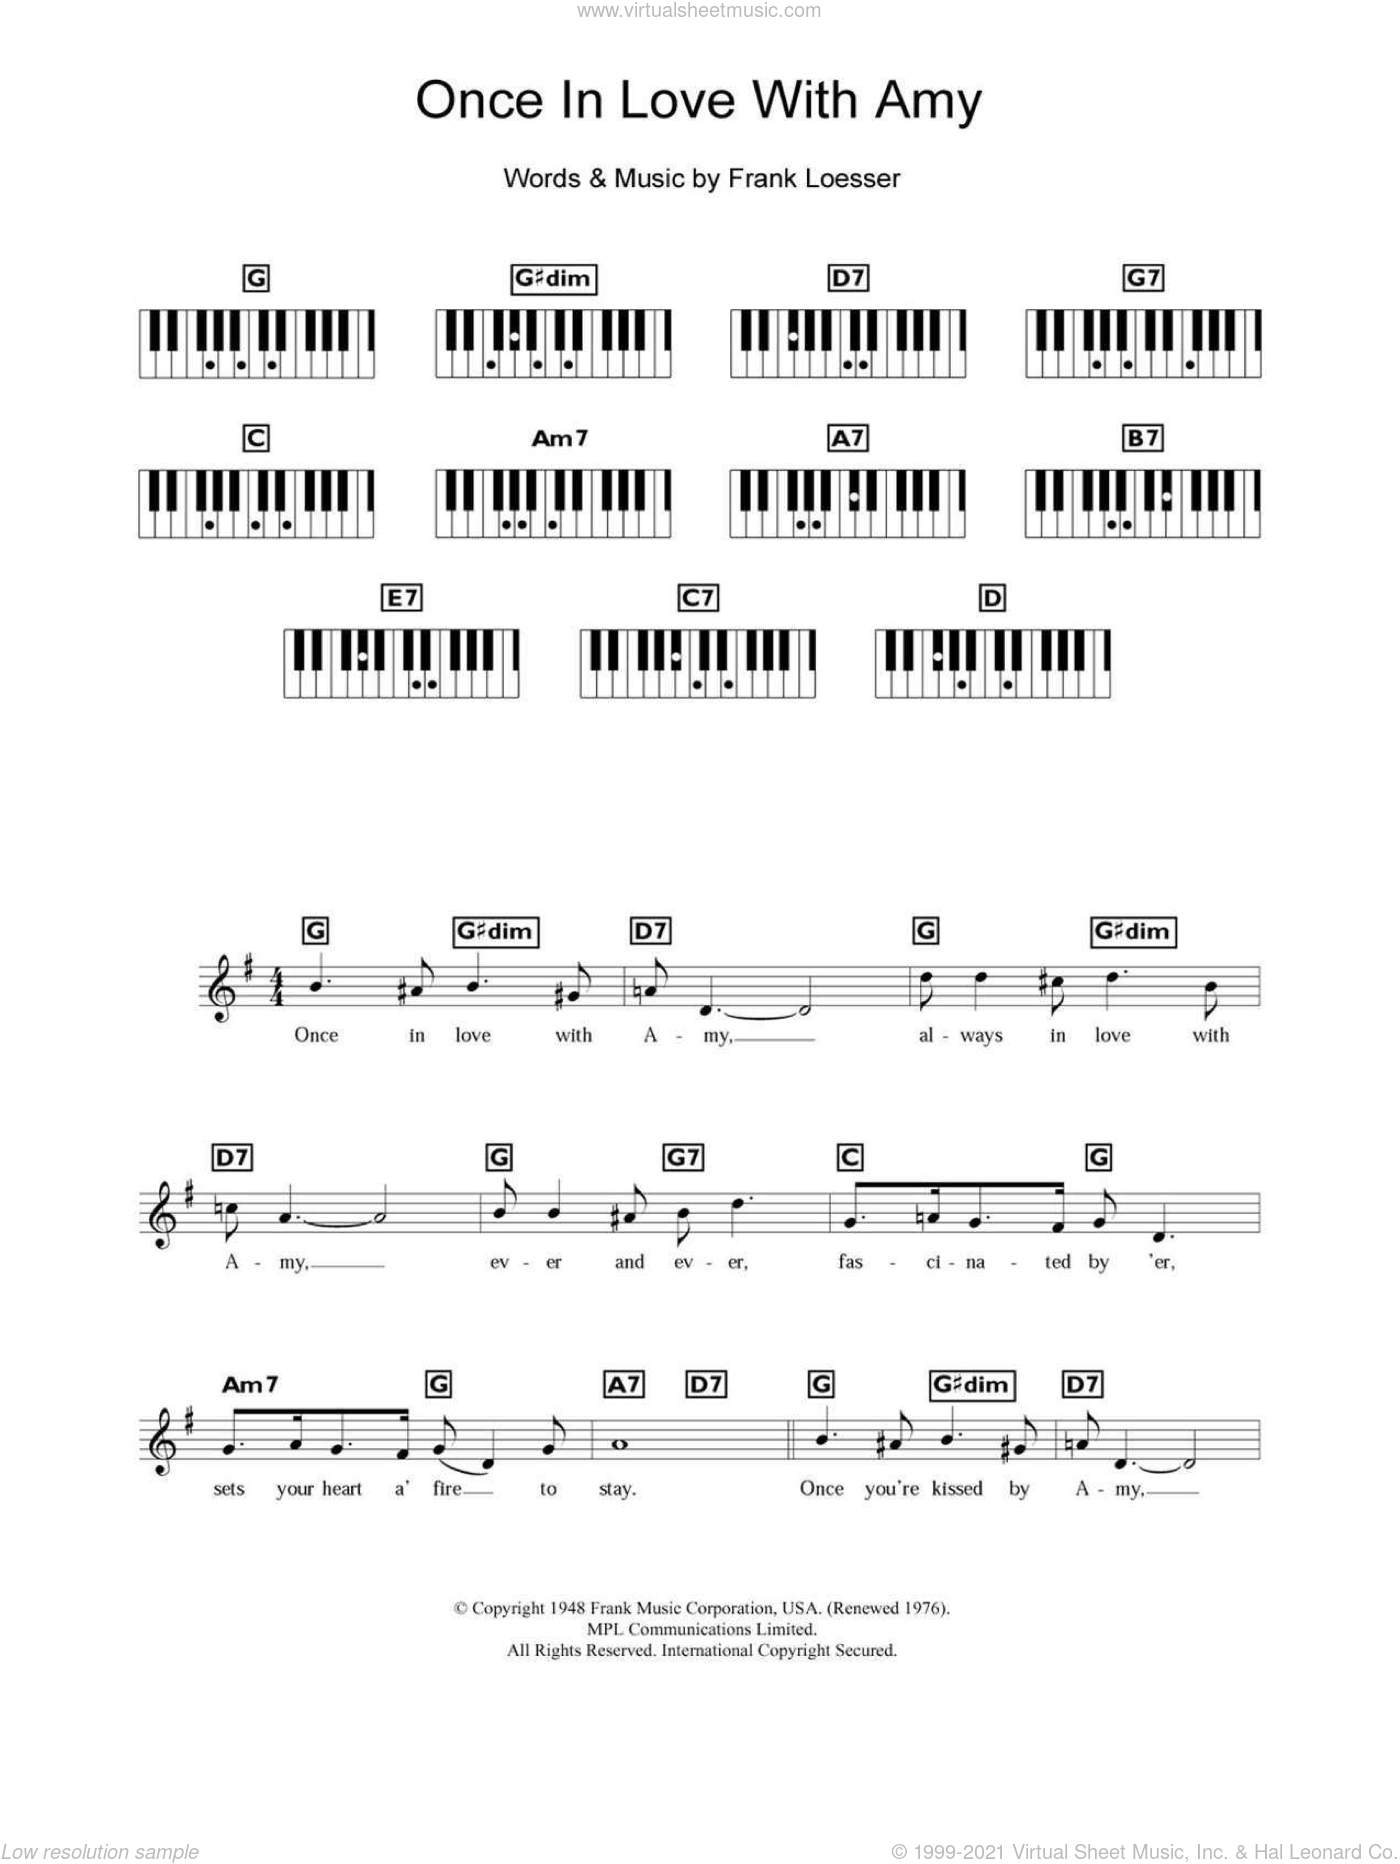 Once In Love With Amy sheet music for piano solo (chords, lyrics, melody) by Frank Loesser. Score Image Preview.